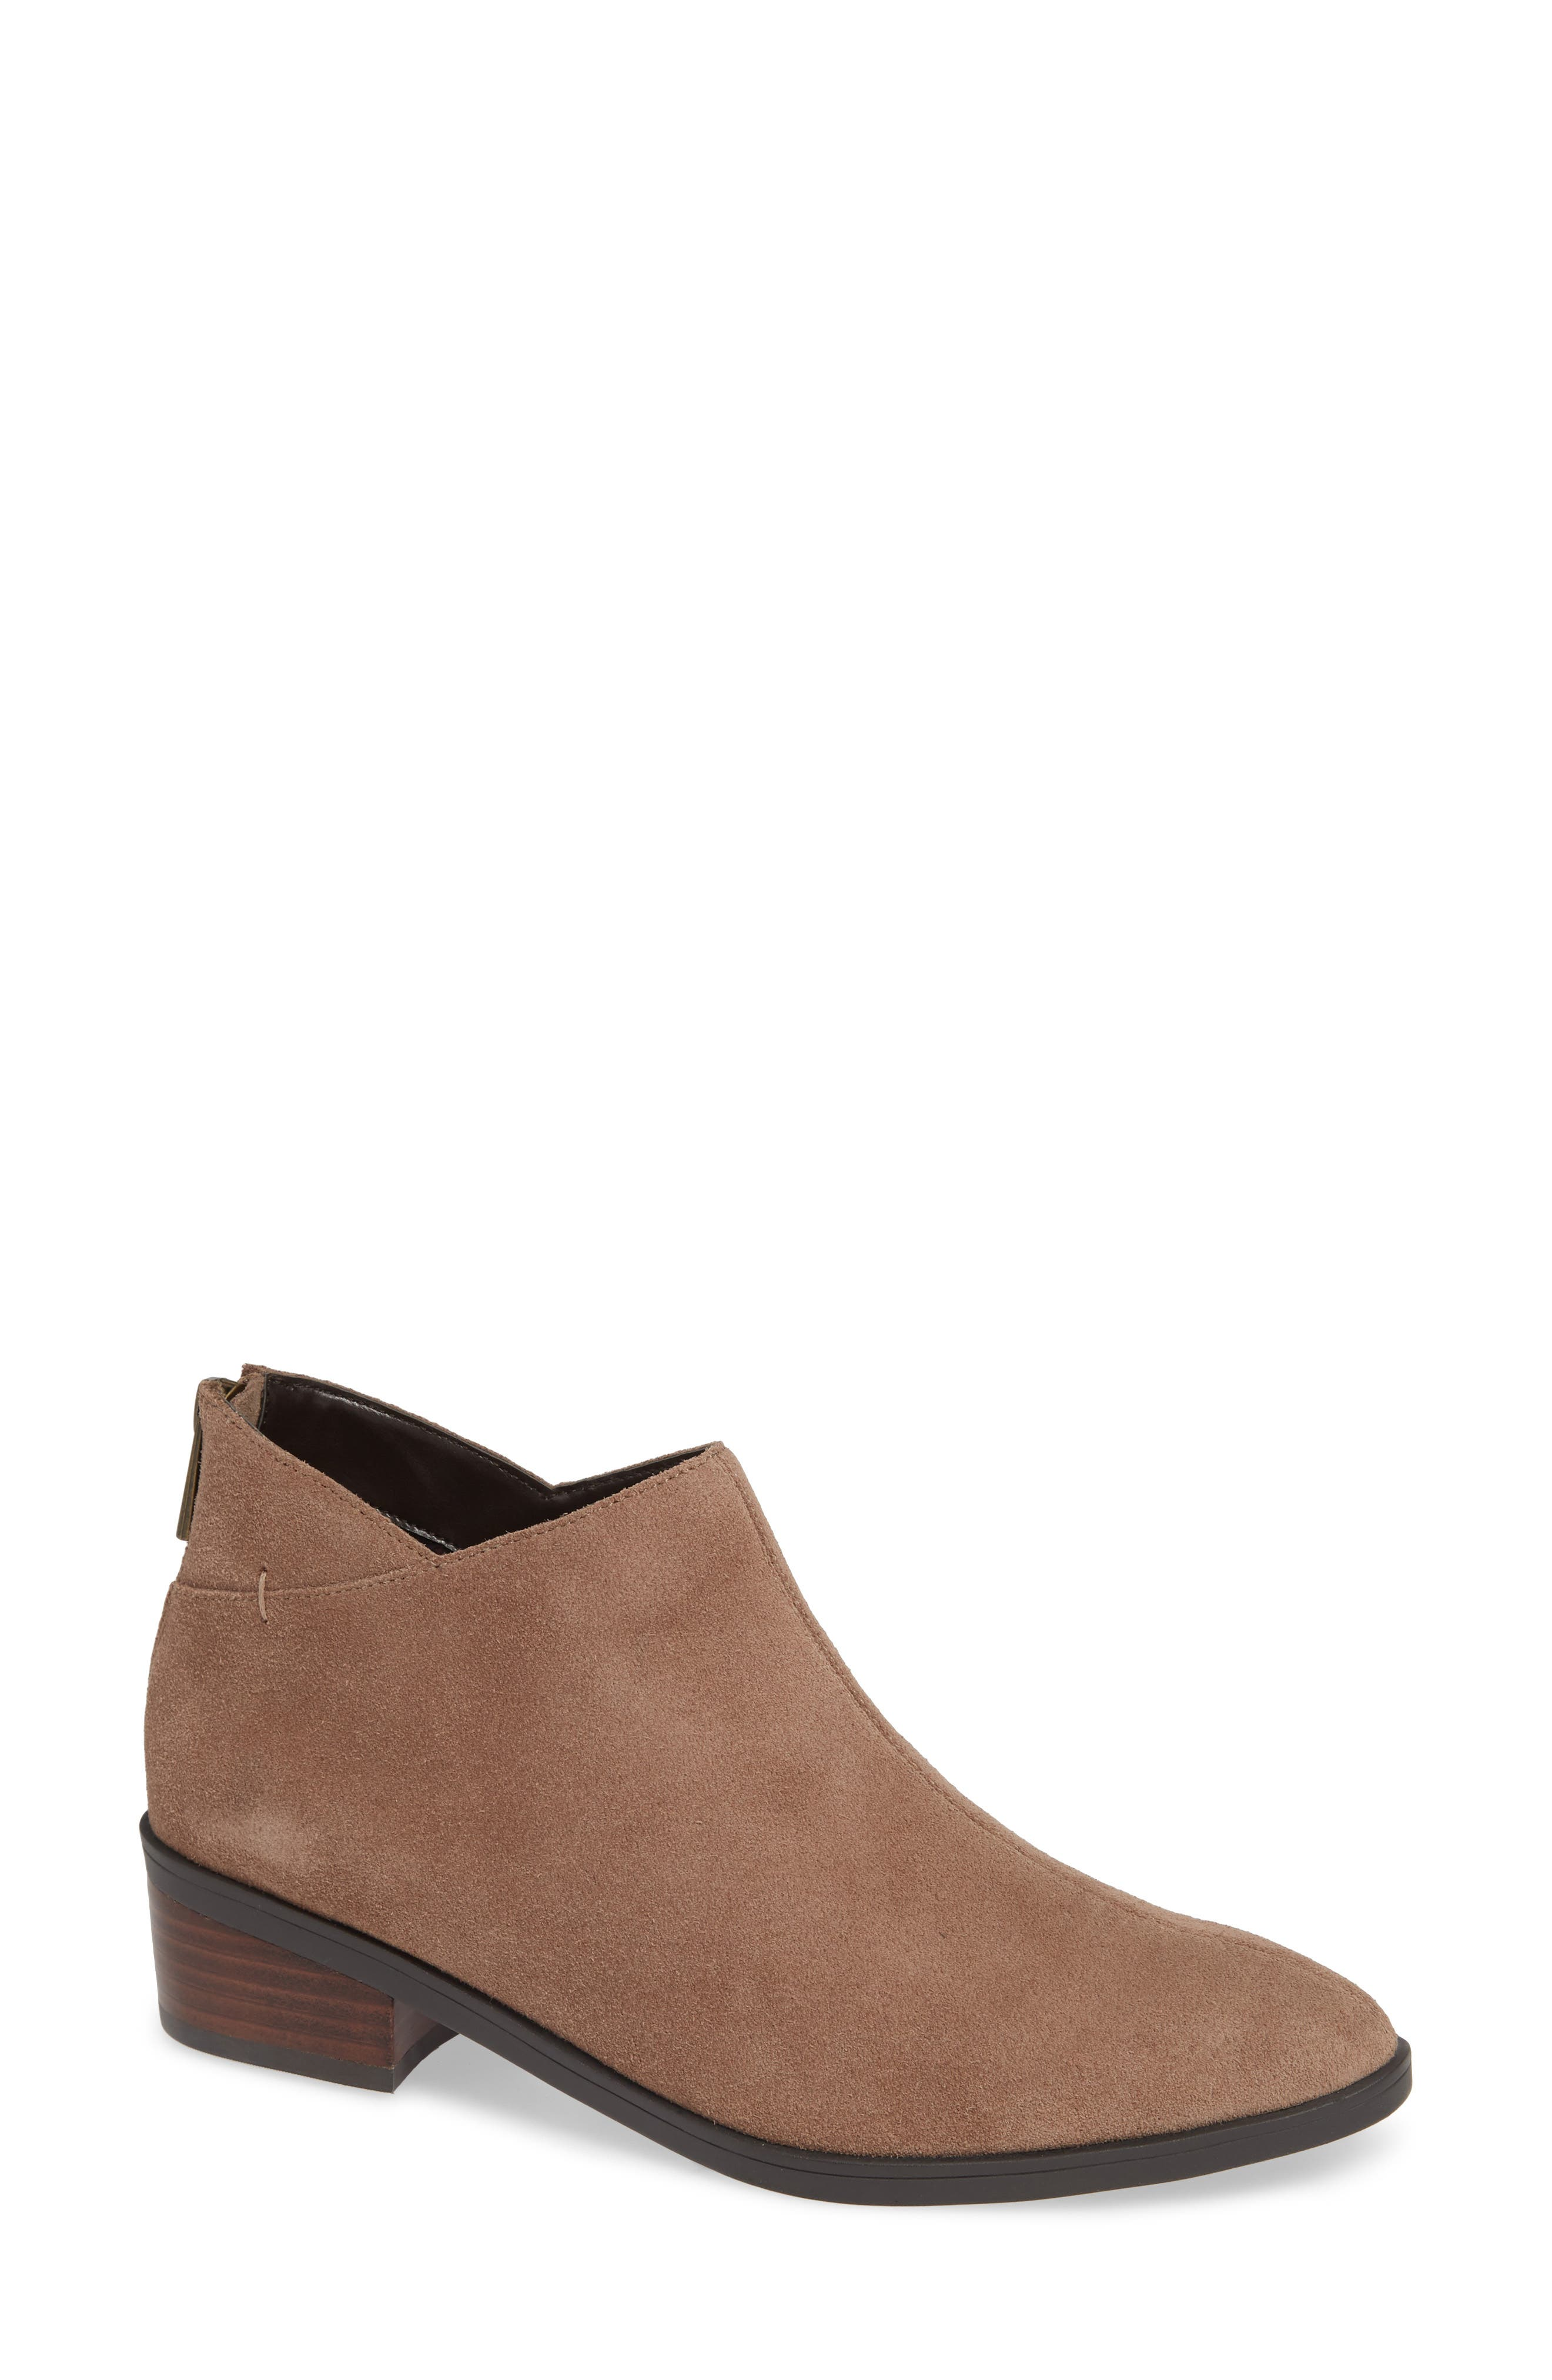 Bella Vita Haven Ankle Bootie, Beige